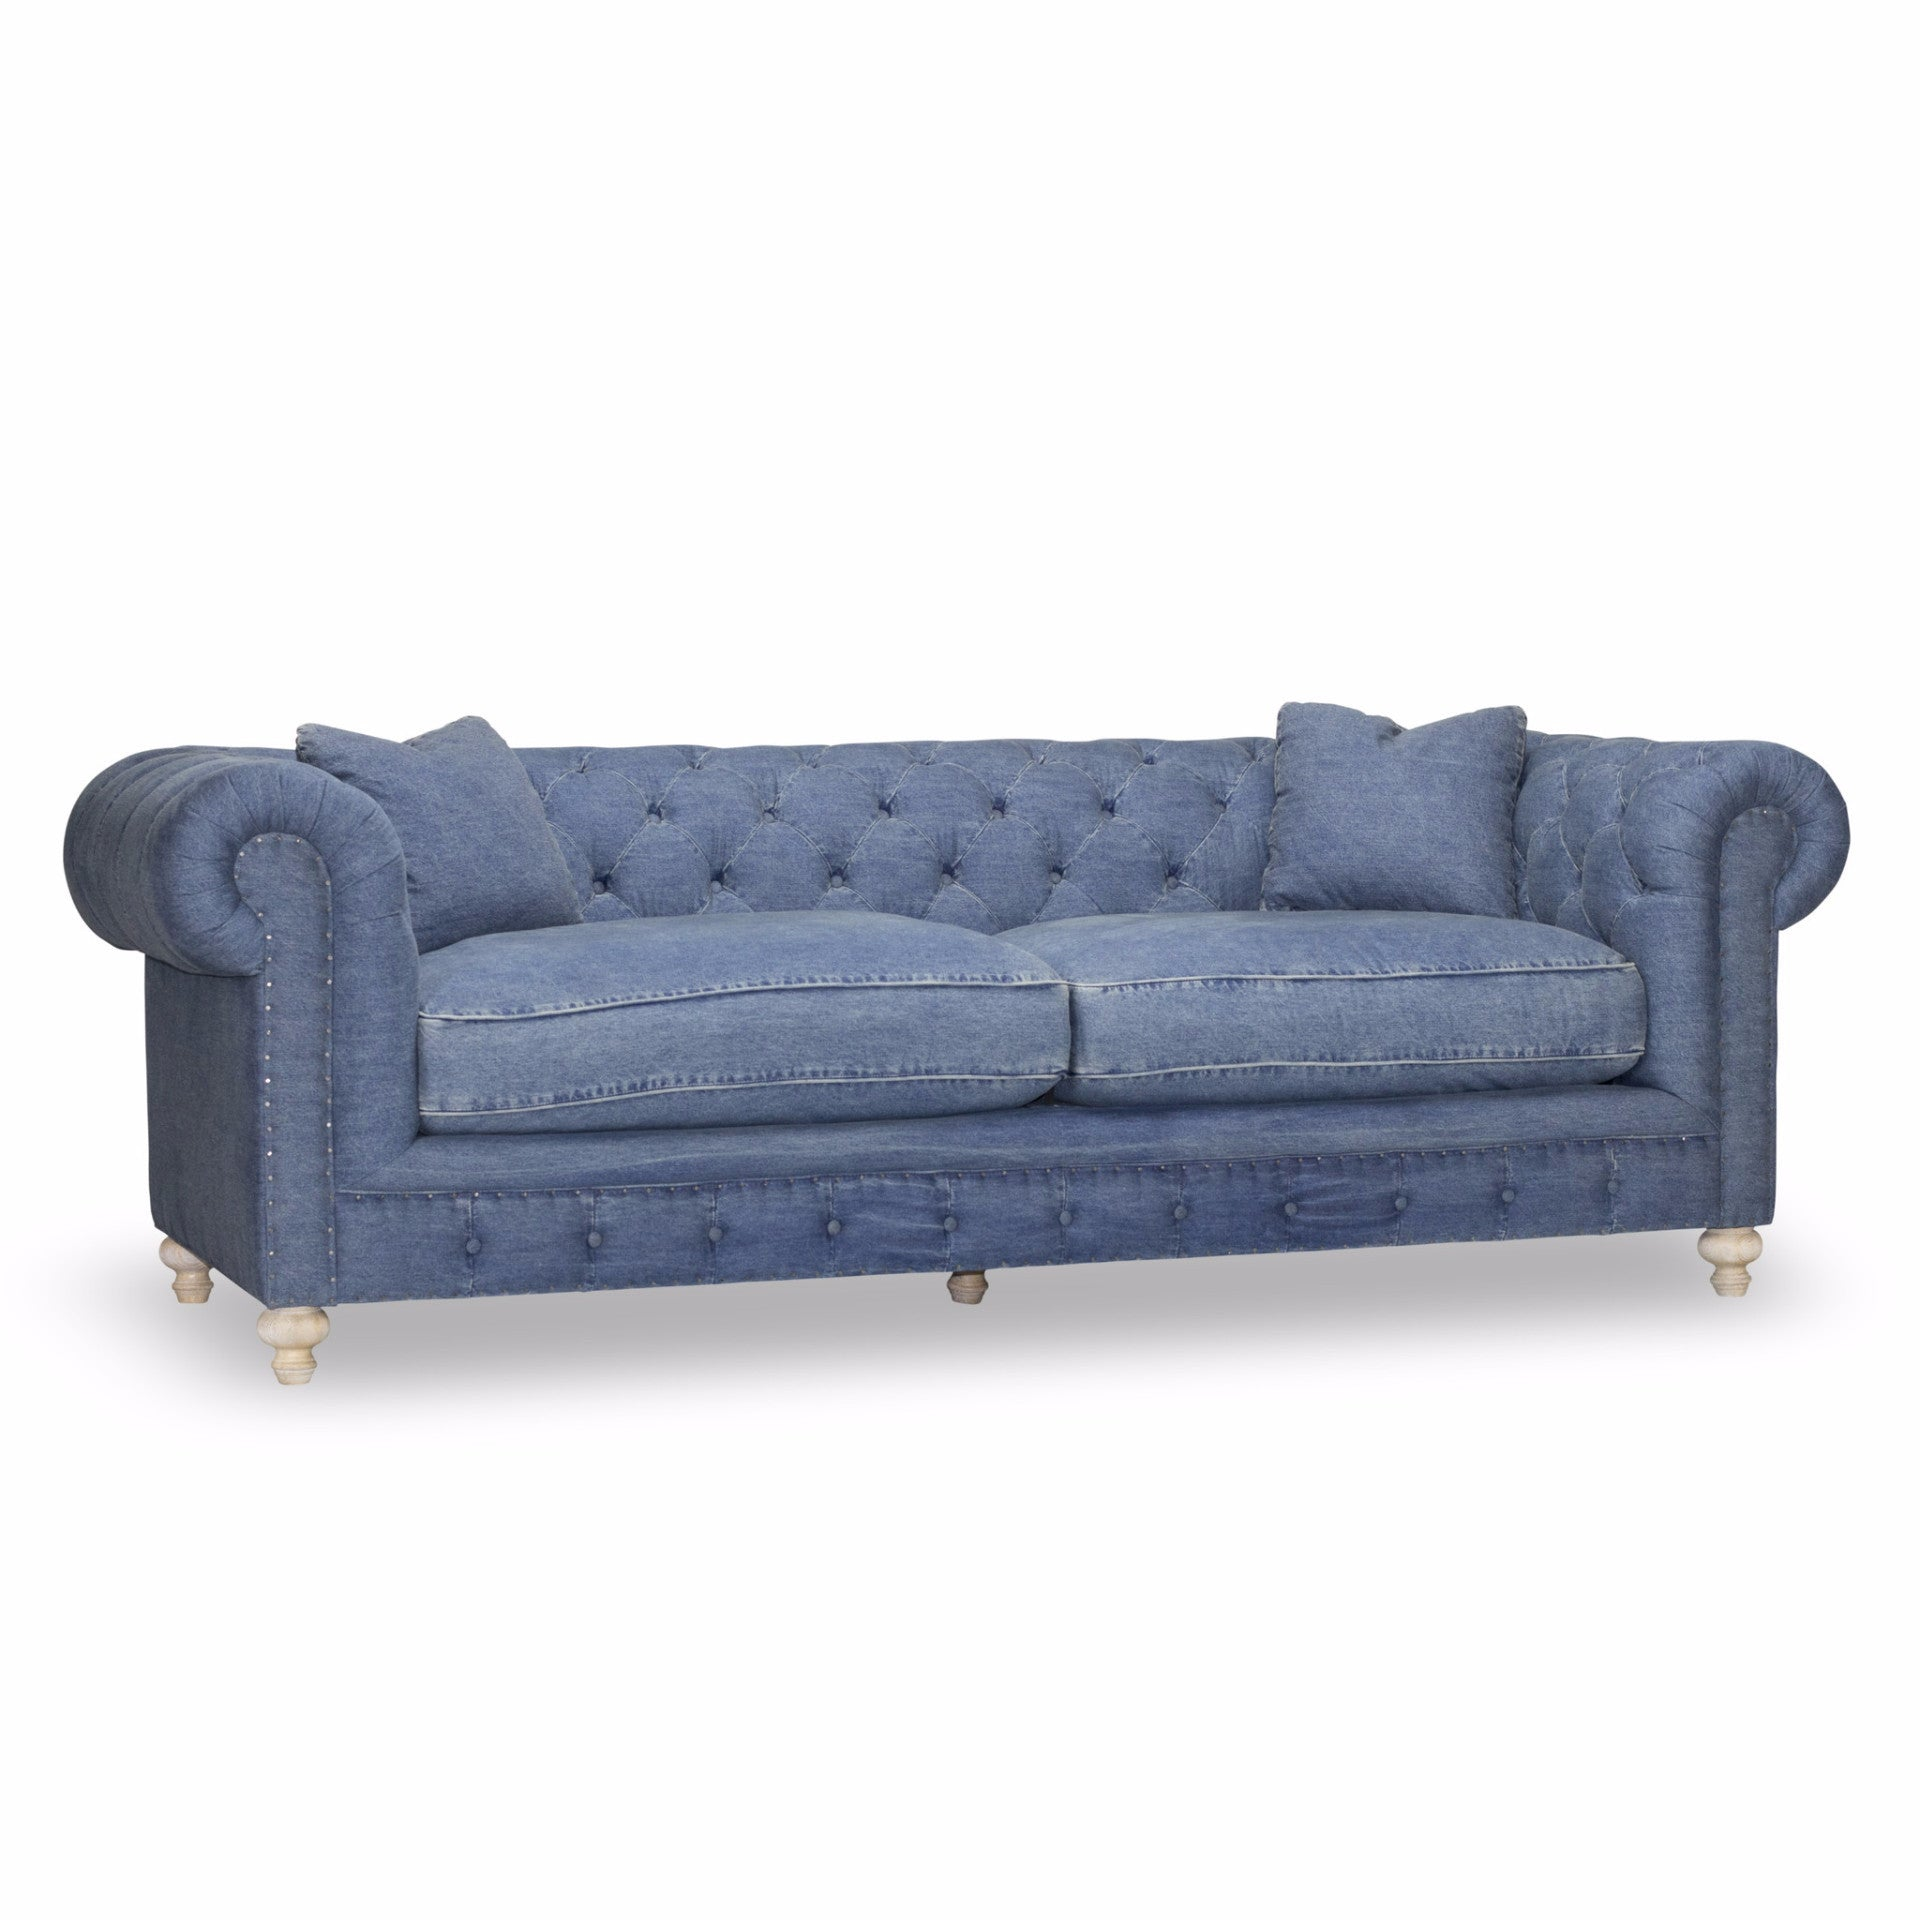 denim twin mattress futon a cover sleeper becomes pin comfy seconds chair in futons furniture design